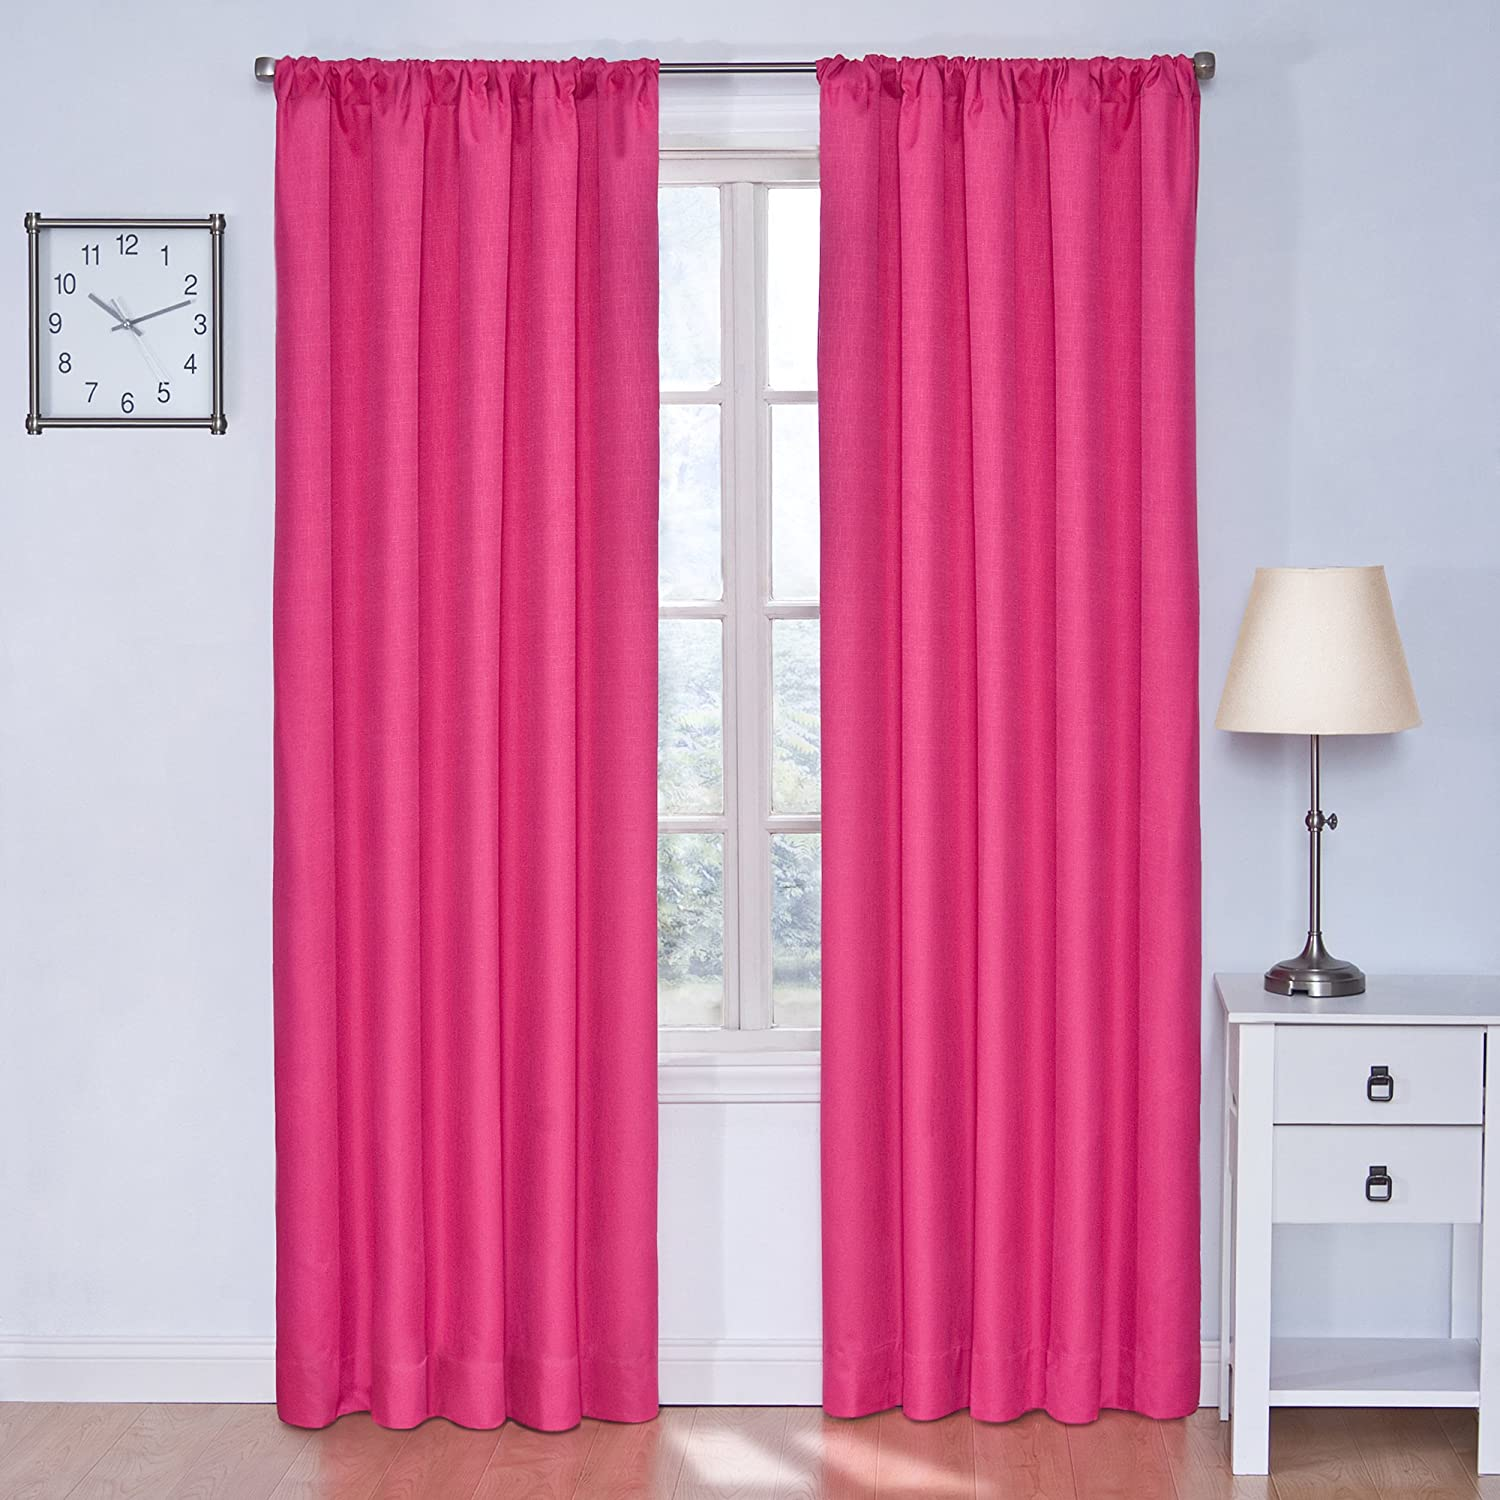 Eclipse Kids Kendall Blackout Thermal Curtain Panel,Raspberry